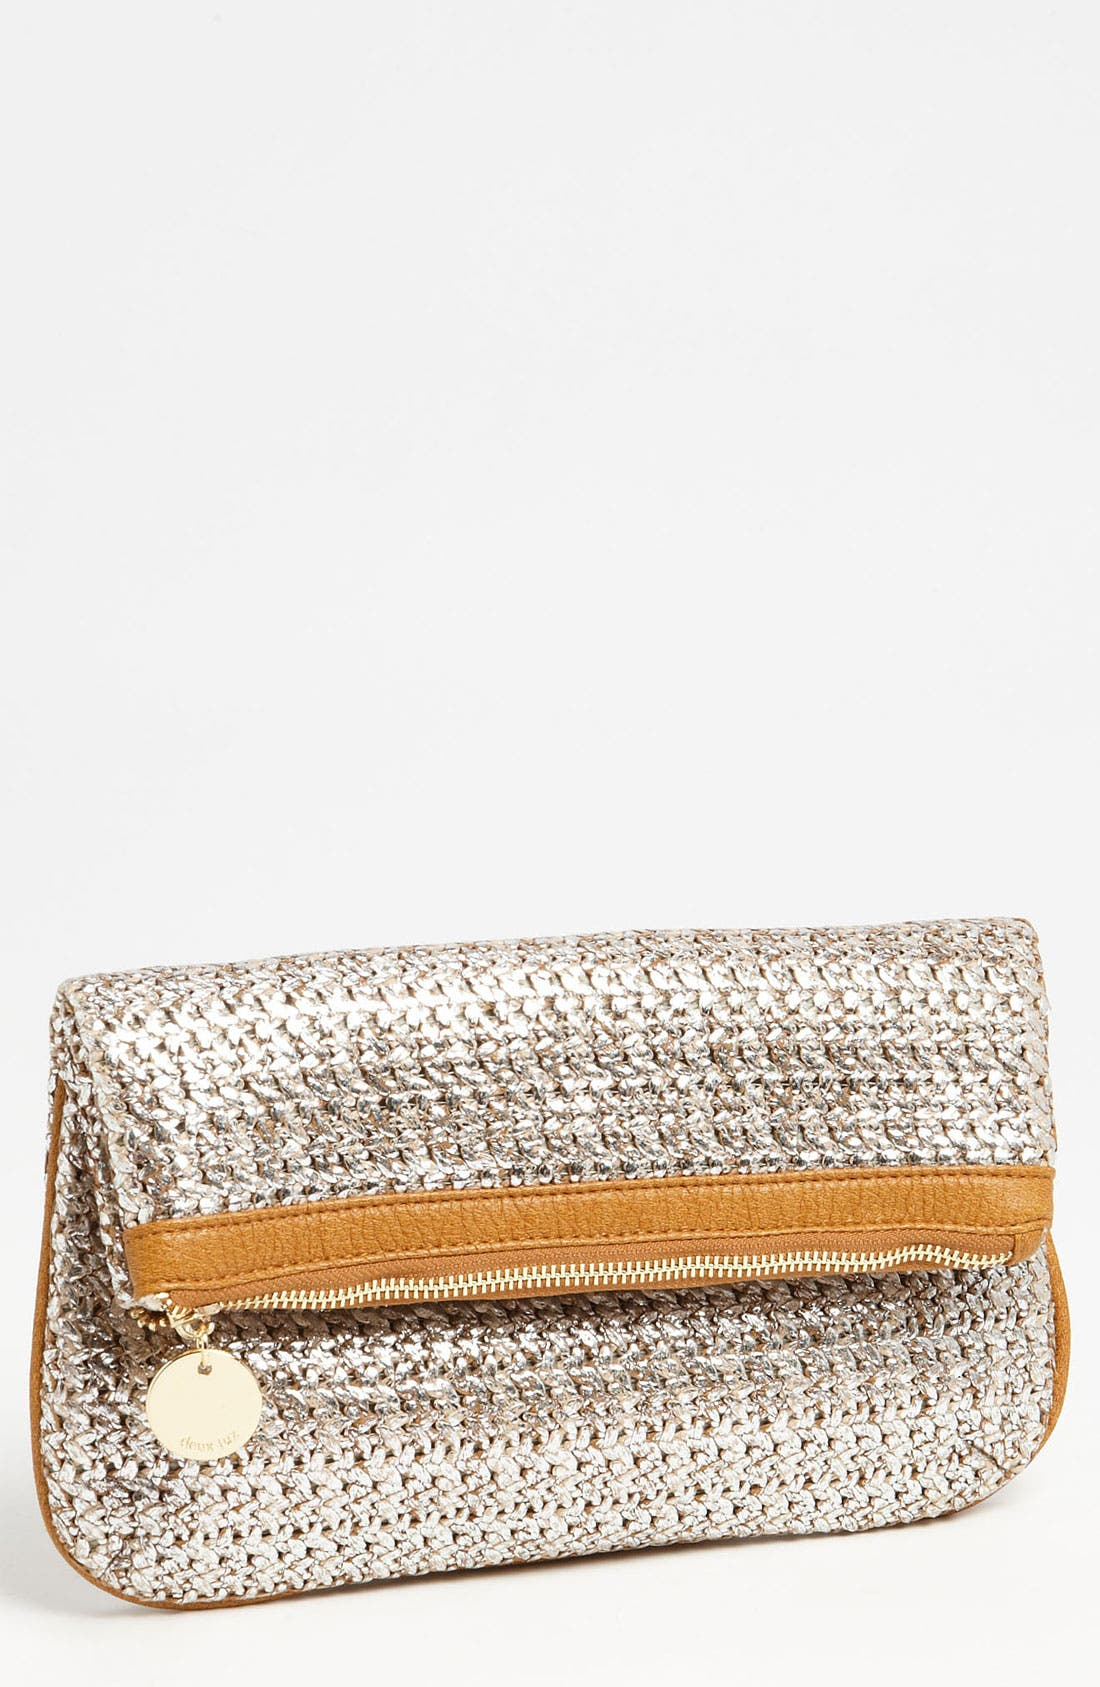 Alternate Image 1 Selected - Deux Lux 'Biscayne' Foldover Clutch